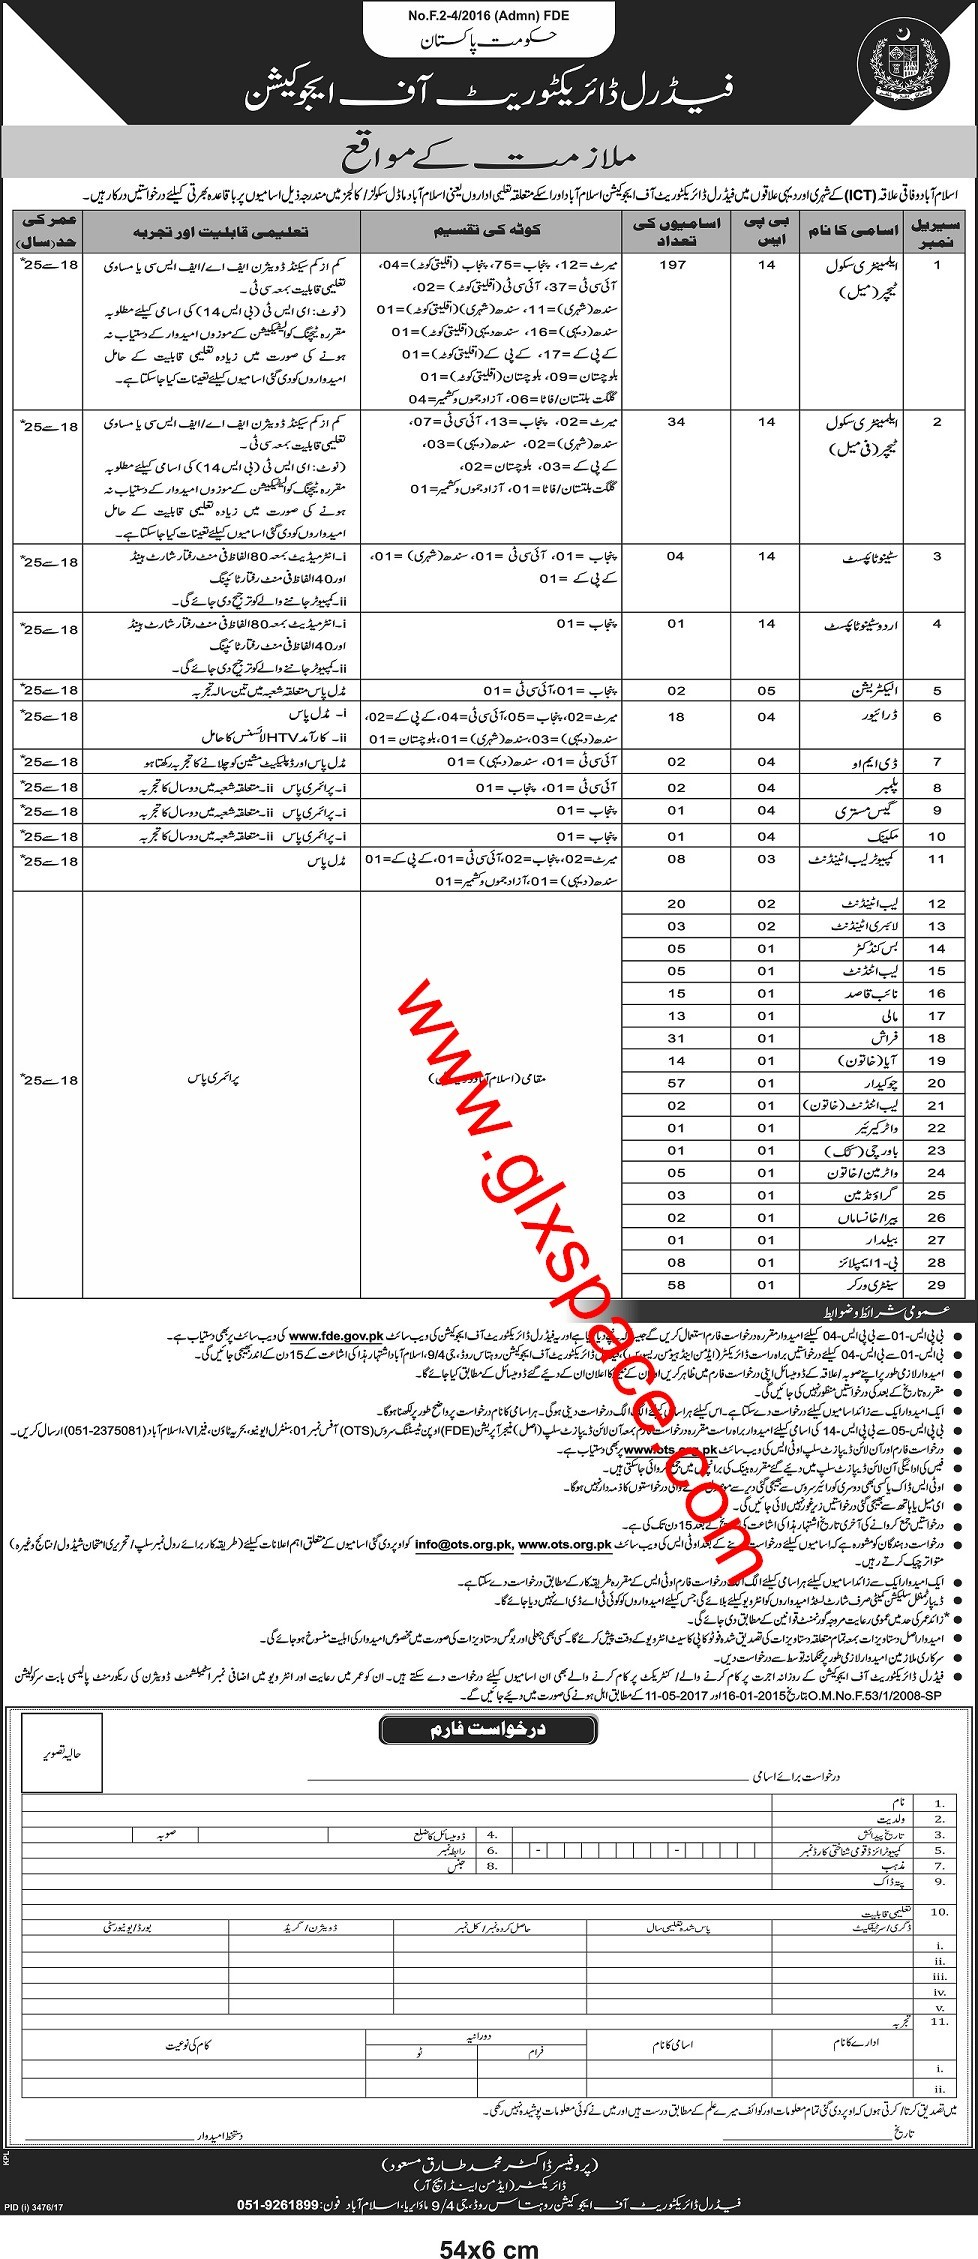 Federal Directorate of Education Vacancies 2018